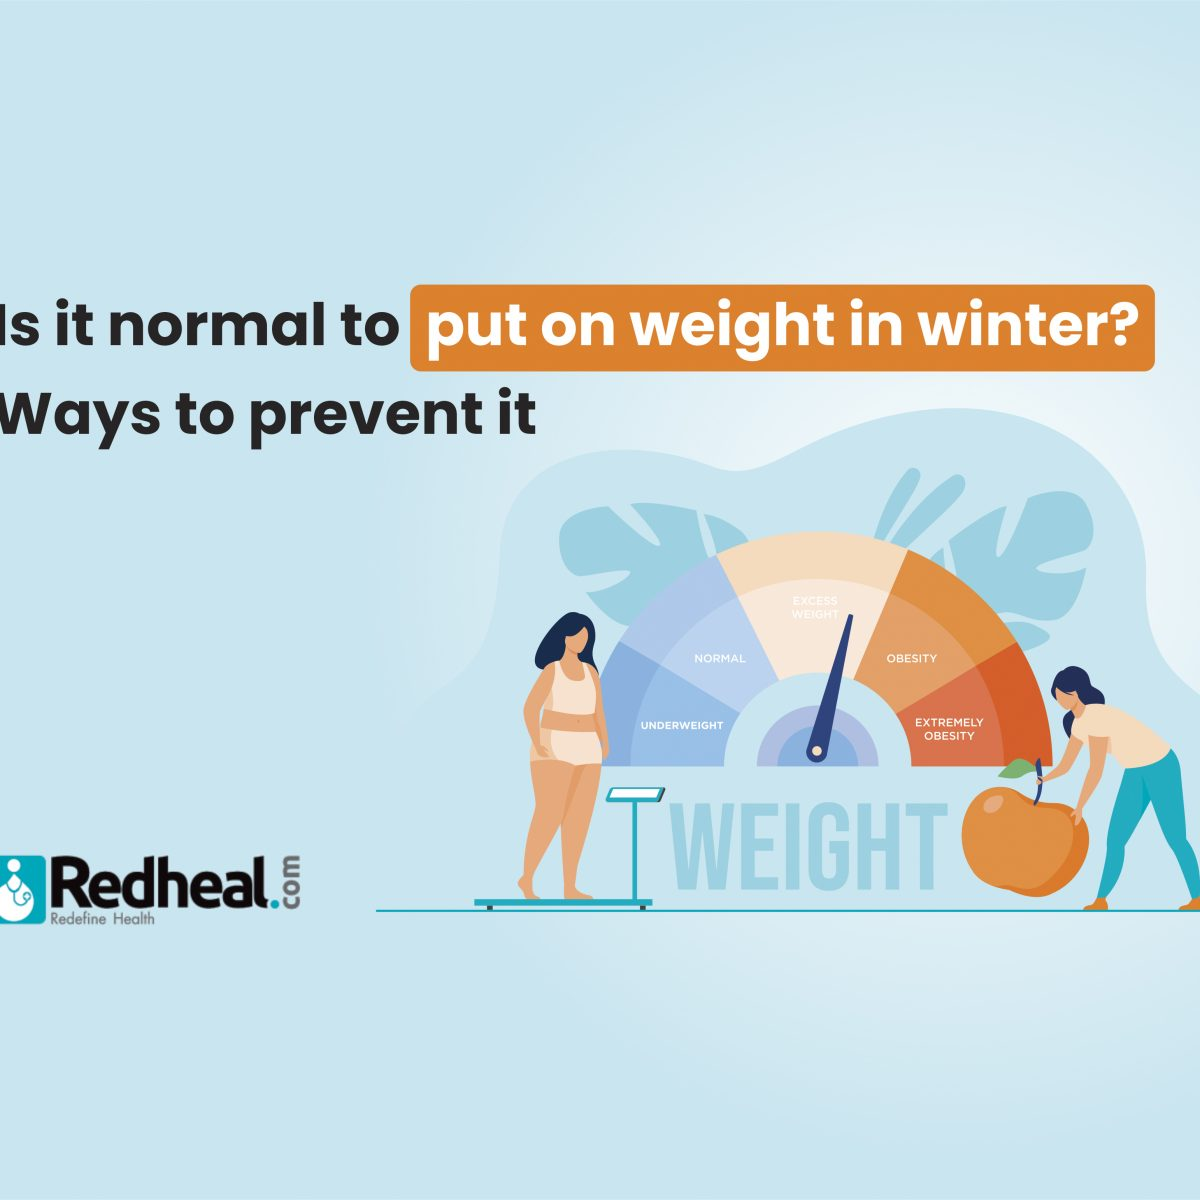 How to Prevent overweight in winter